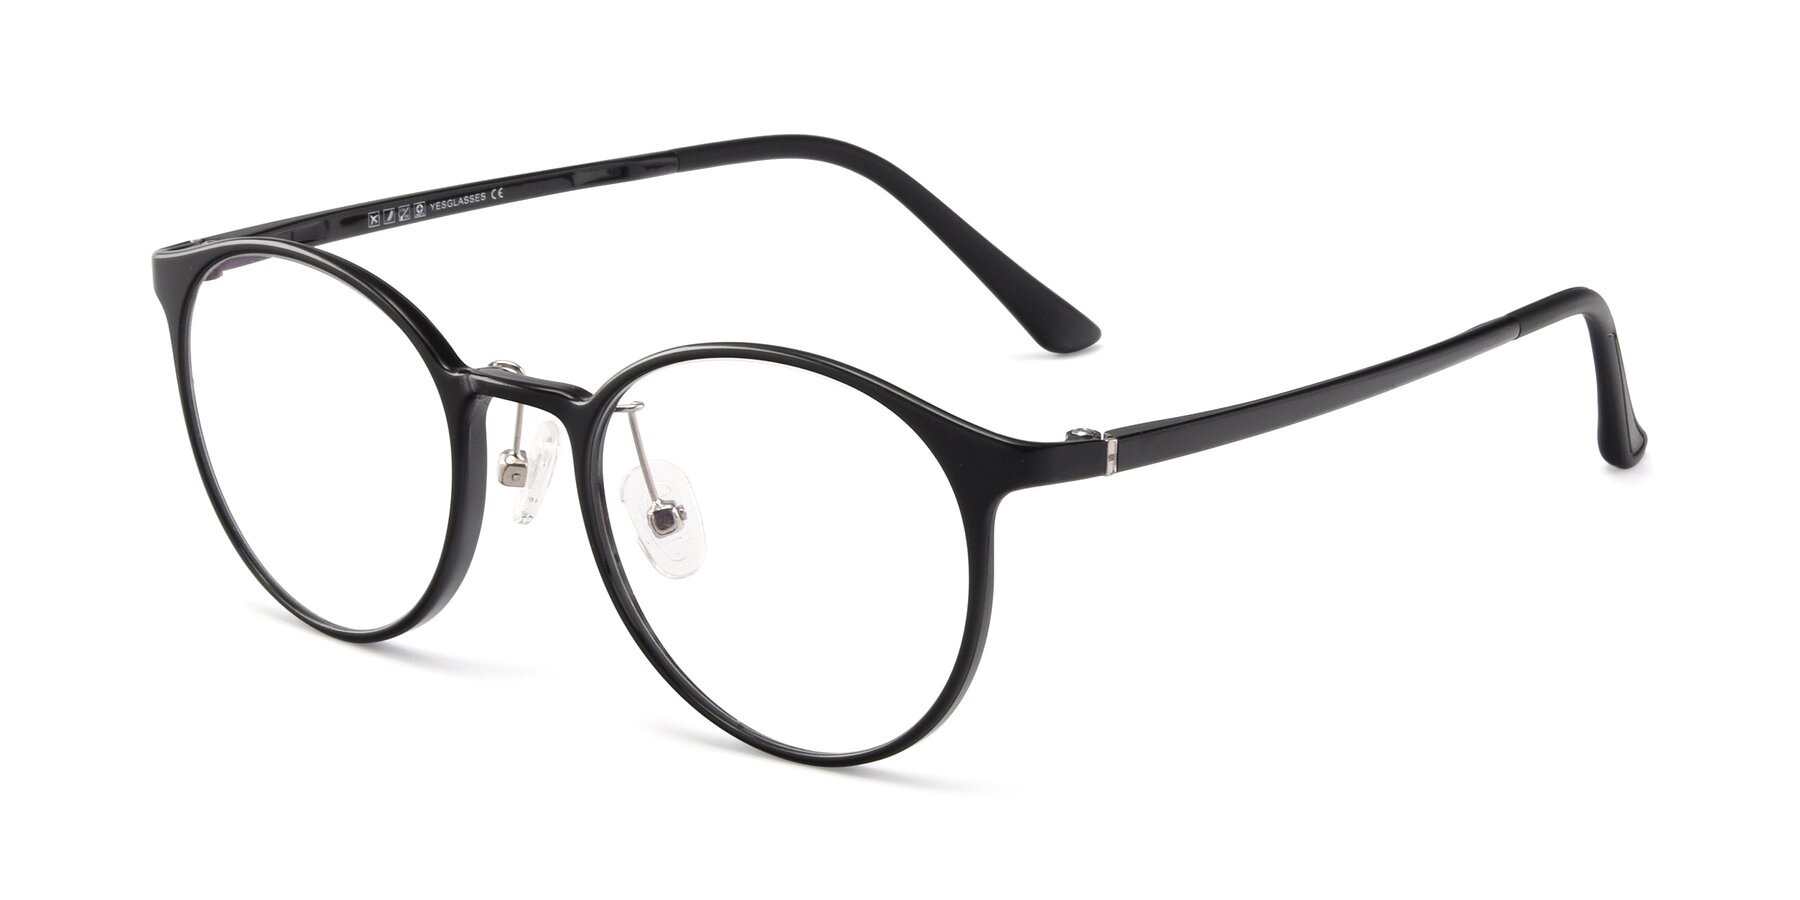 Angle of S7027 in Black with Clear Blue Light Blocking Lenses